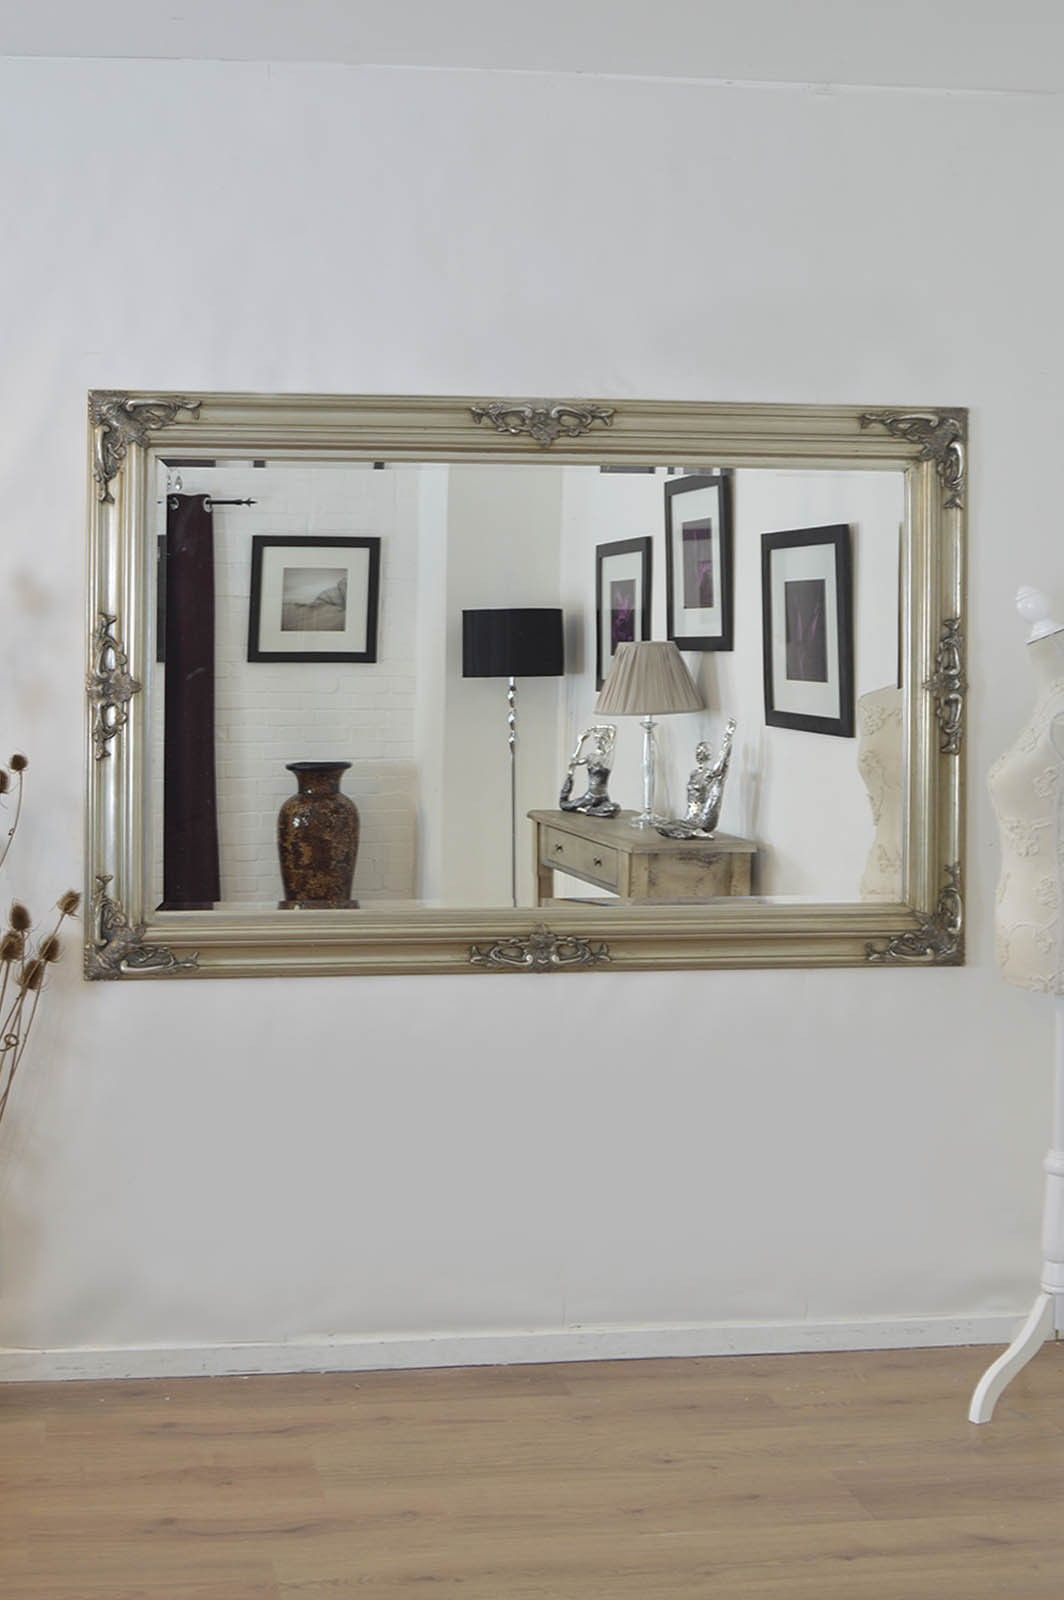 4 Surprising Diy Ideas Small Wall Mirror Couch Art Toilet PaperWall Horizontal Dining Rooms Gallery Display